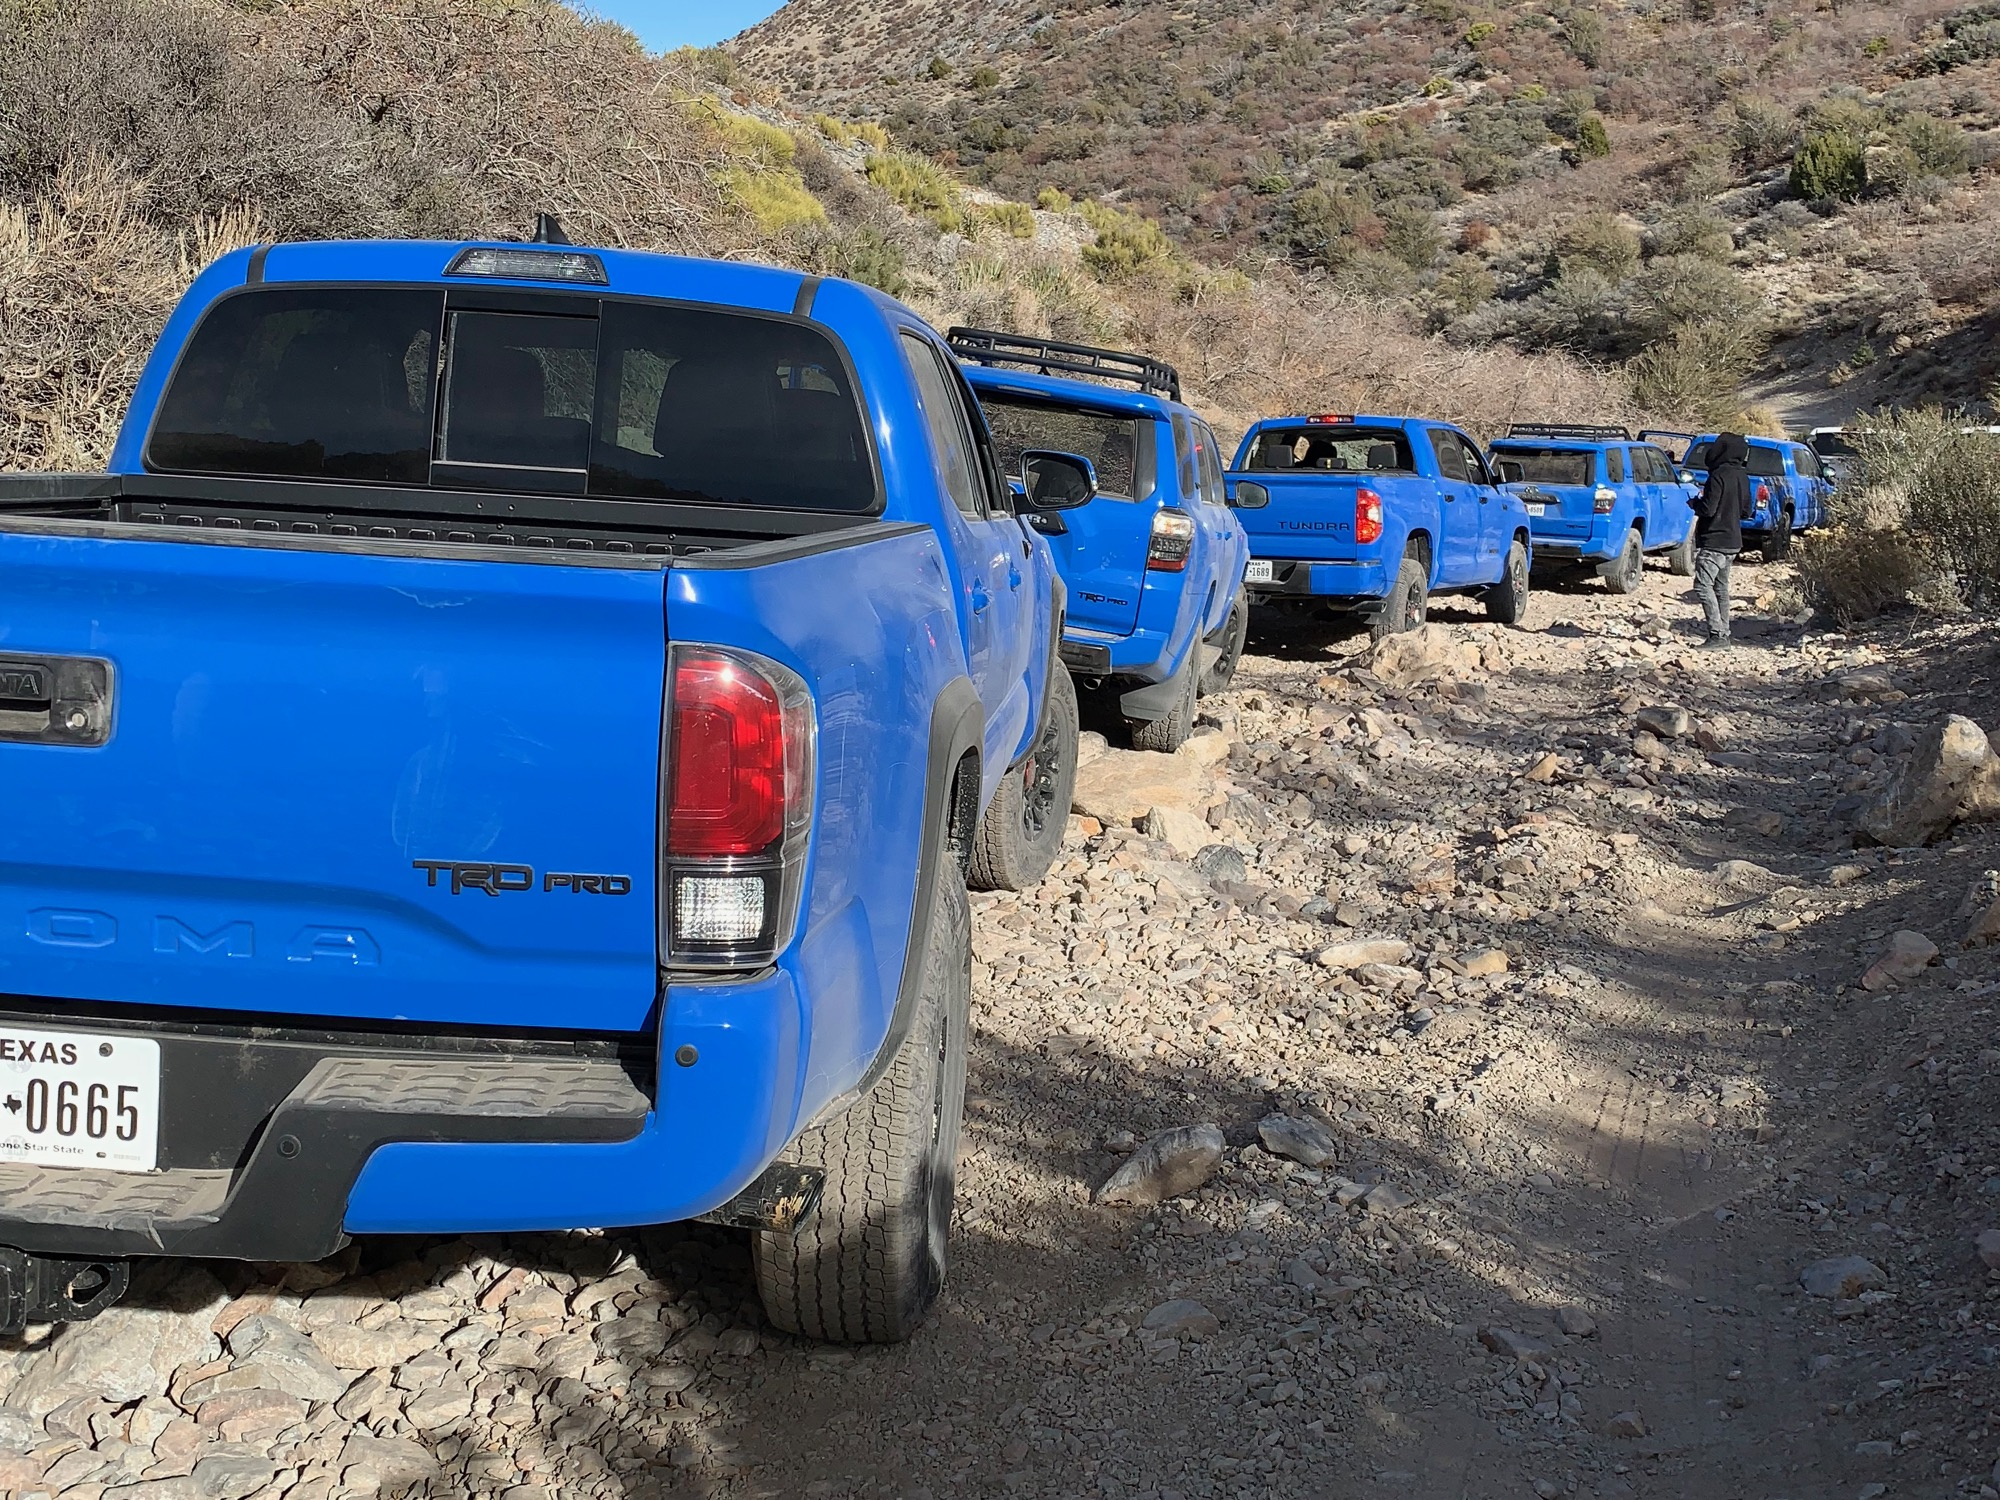 Gunaxin : Toyota TRD Pro – Off-Road Adventure Over Wheeler Pass in Nevada